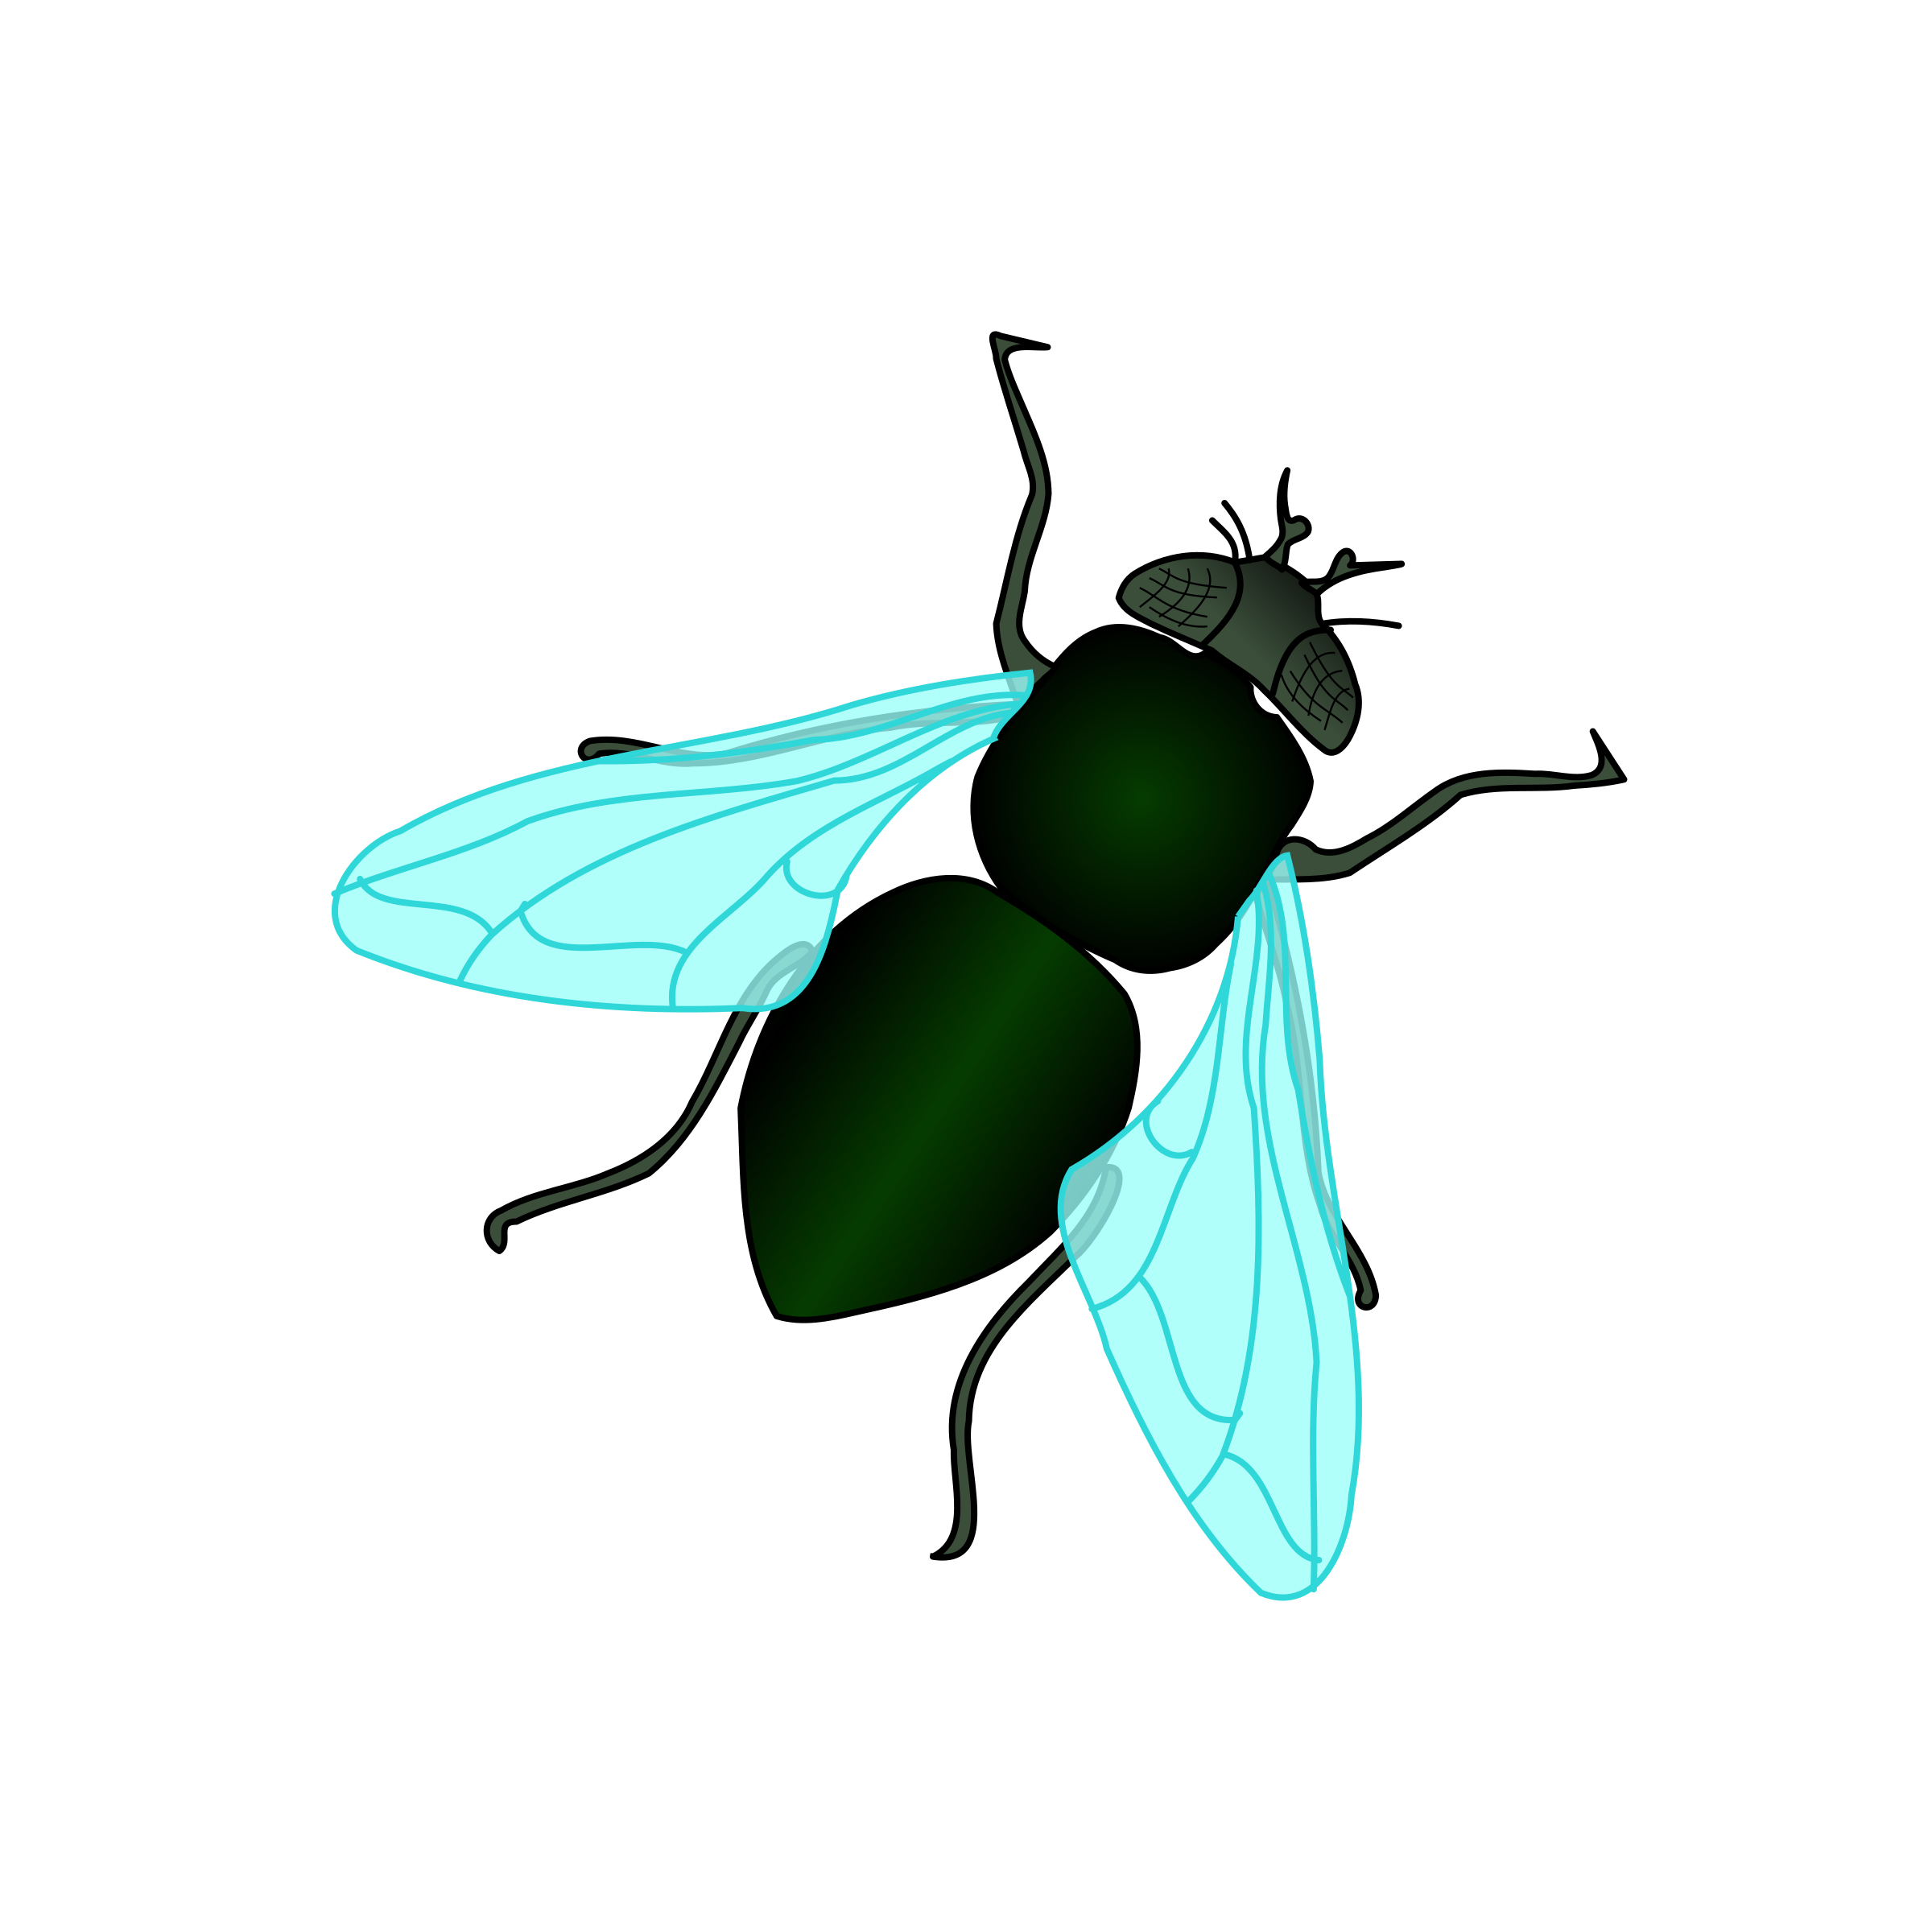 Bug house fly free. Insects clipart desert insect